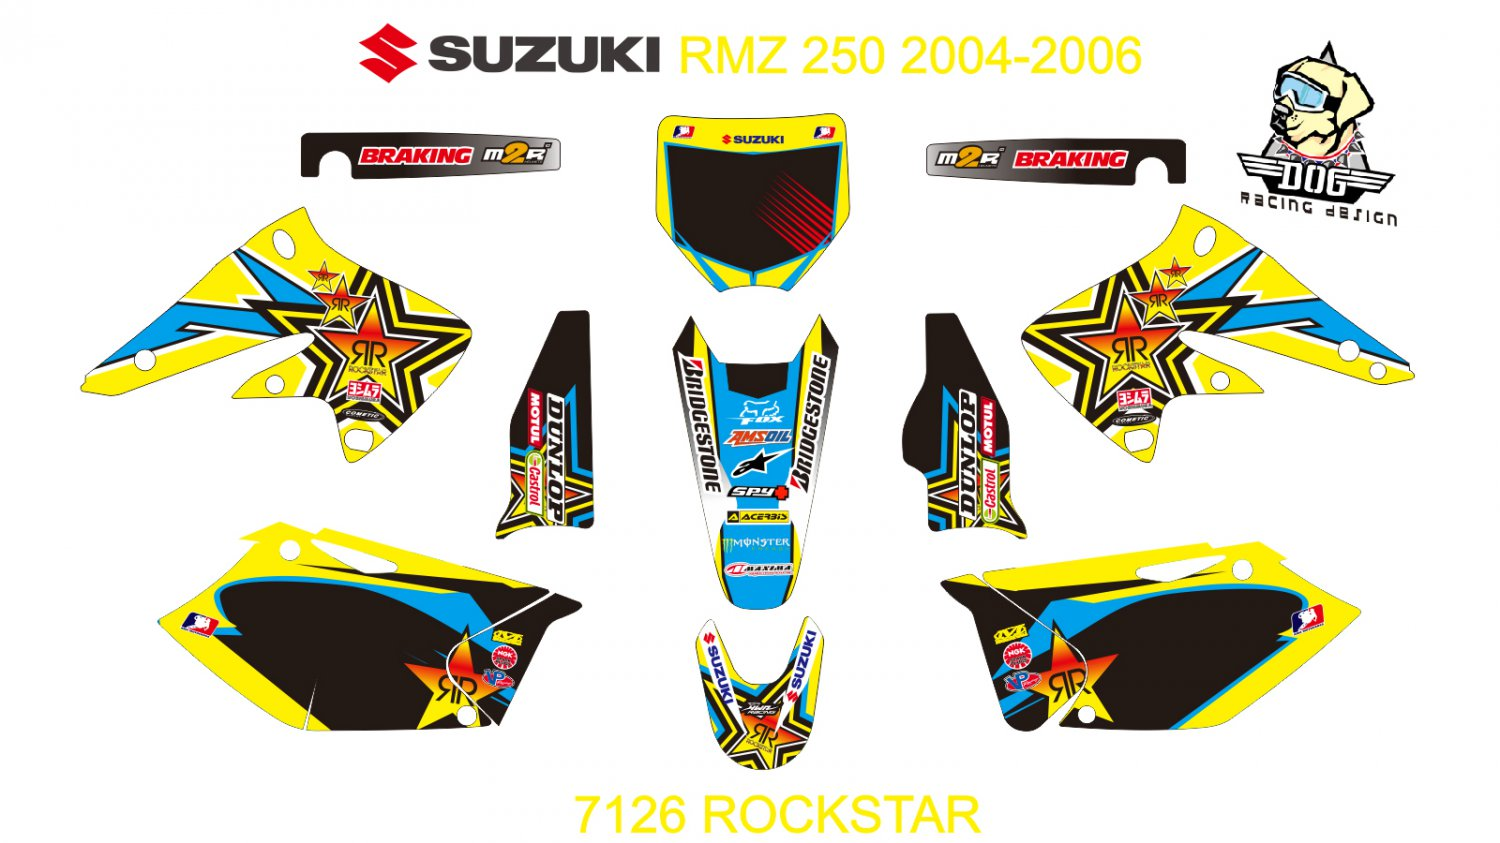 SUZUKI RMZ 250 2004-2006 GRAPHIC DECAL KIT CODE.7126